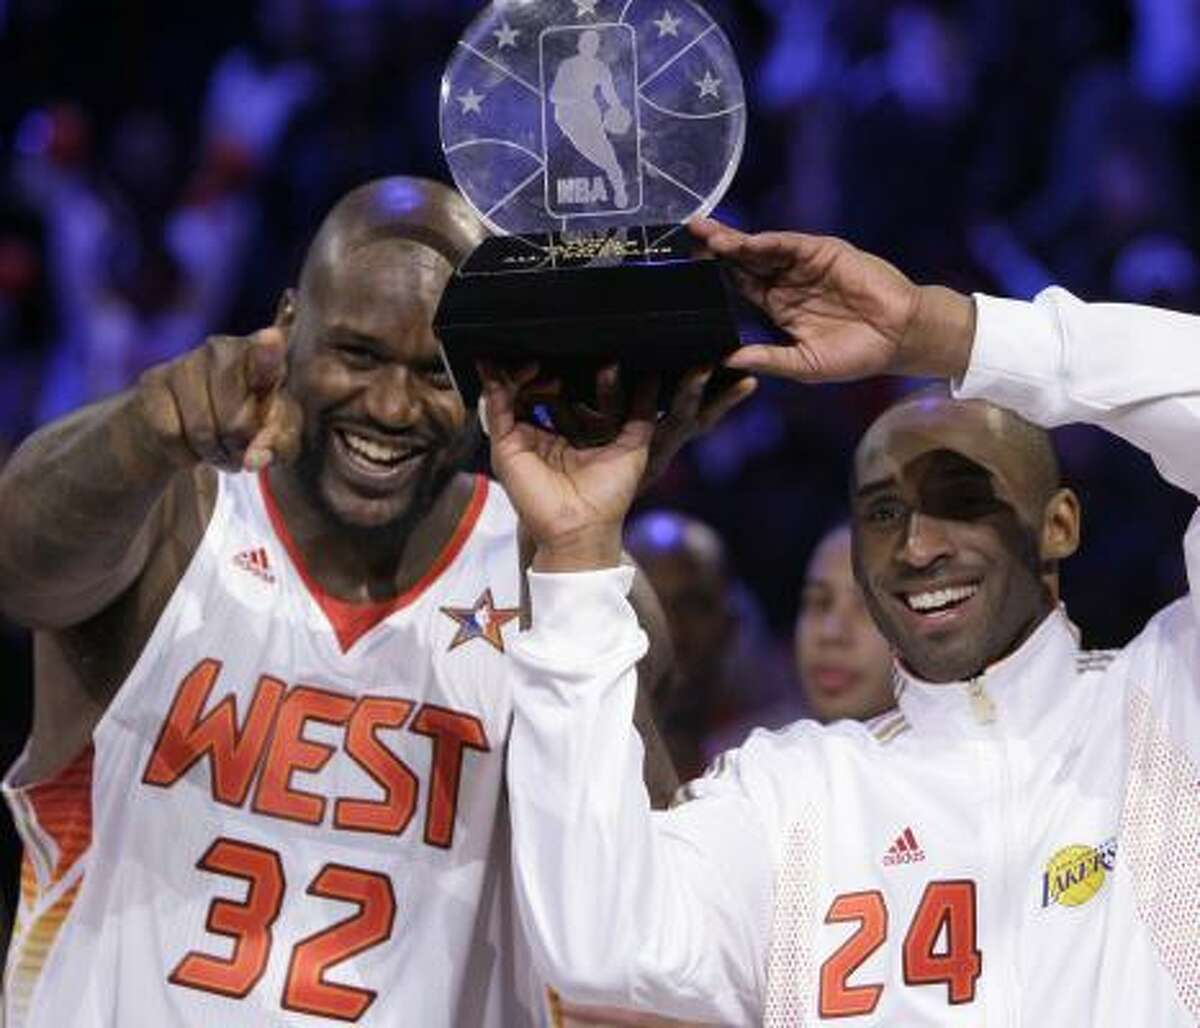 Western Conference center Shaquille O'Neal (32), of the Phoenix Suns, and Western Conference guard Kobe Bryant (24), of the Los Angeles Lakers, share the MVP award after the NBA All-Star Game.